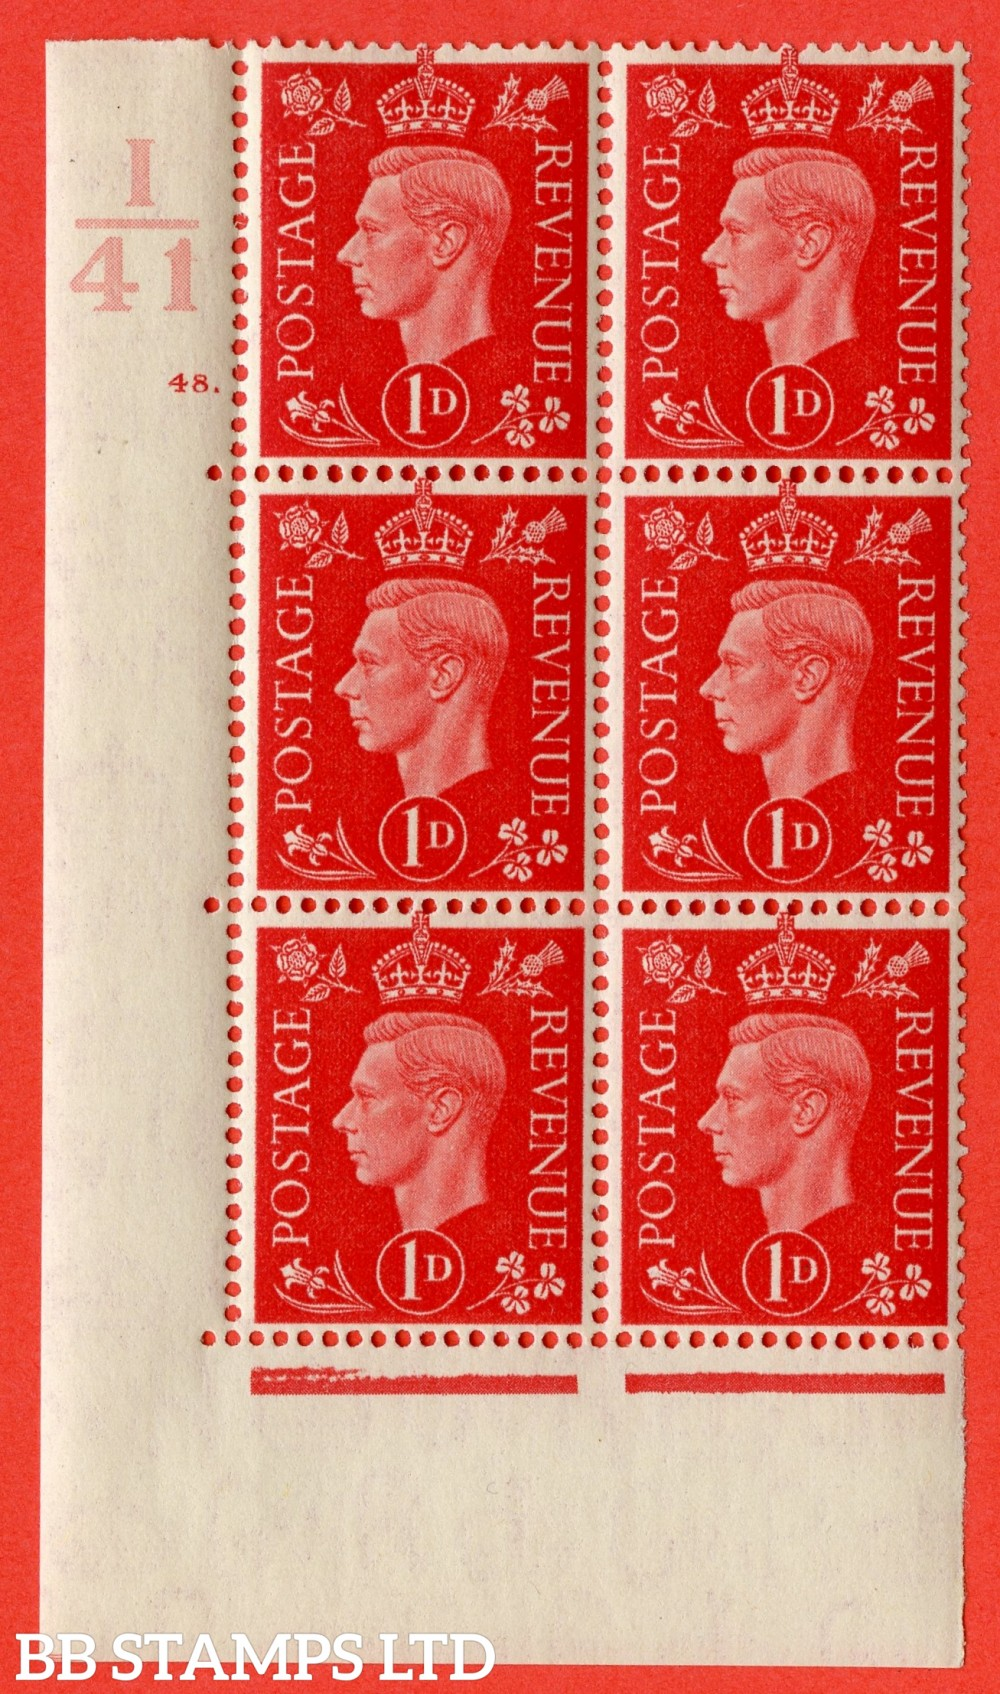 "SG. 463. Q4. 1d Scarlet. A very fine lightly mounted mint "" Control I41 cylinder 48 no dot "" block of 6 with perf type 5 E/I with marginal rule."